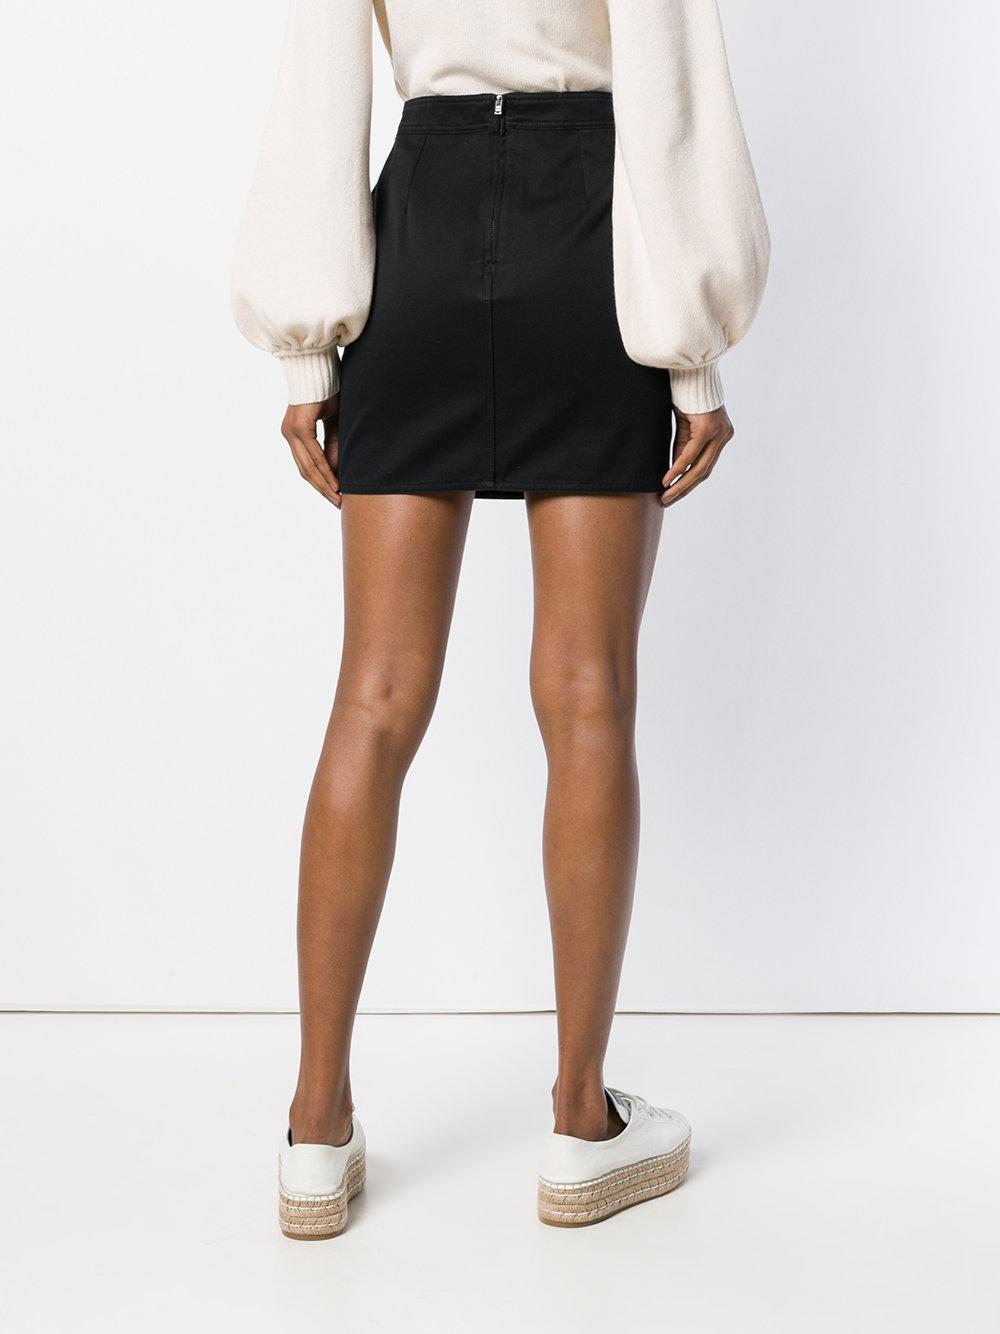 Étoile Isabel Marant Cotton Frilled Fitted Skirt in Black